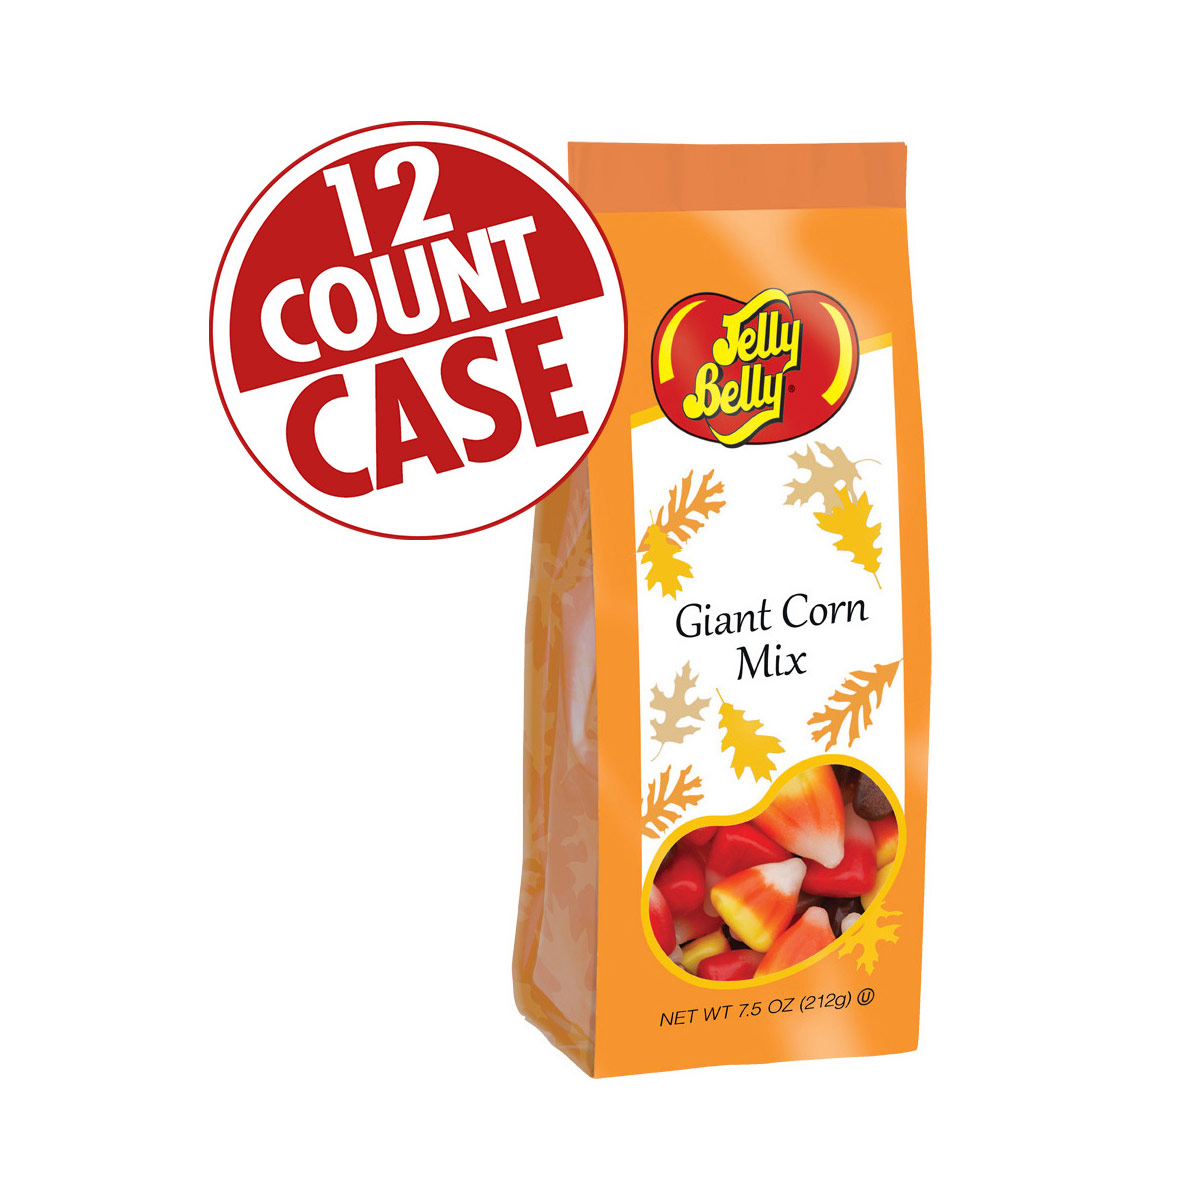 Giant Candy Corn Gift Bag - 7.5 oz Bag - 12-Count Case